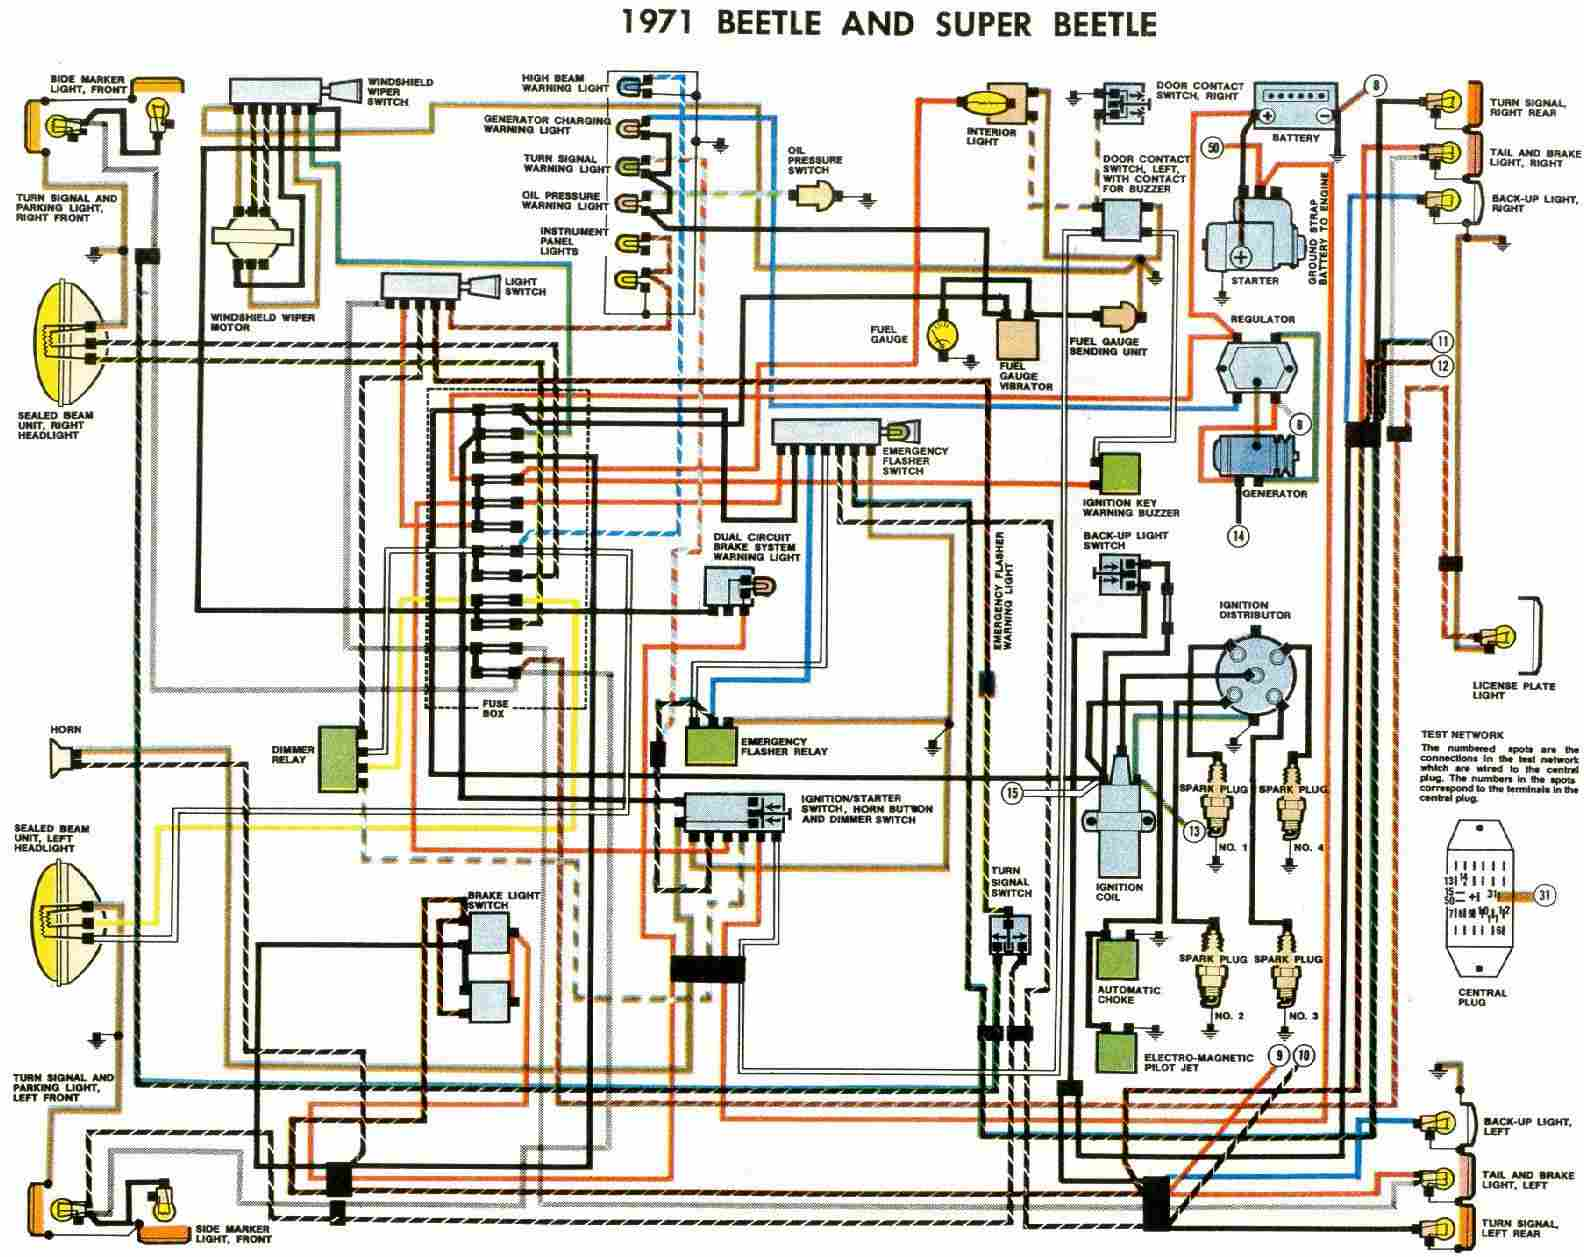 VW+Beetle+and+Super+Beetle+1971+Electrical+Wiring+Diagram 2000 vw wiring diagram new era of wiring diagram \u2022